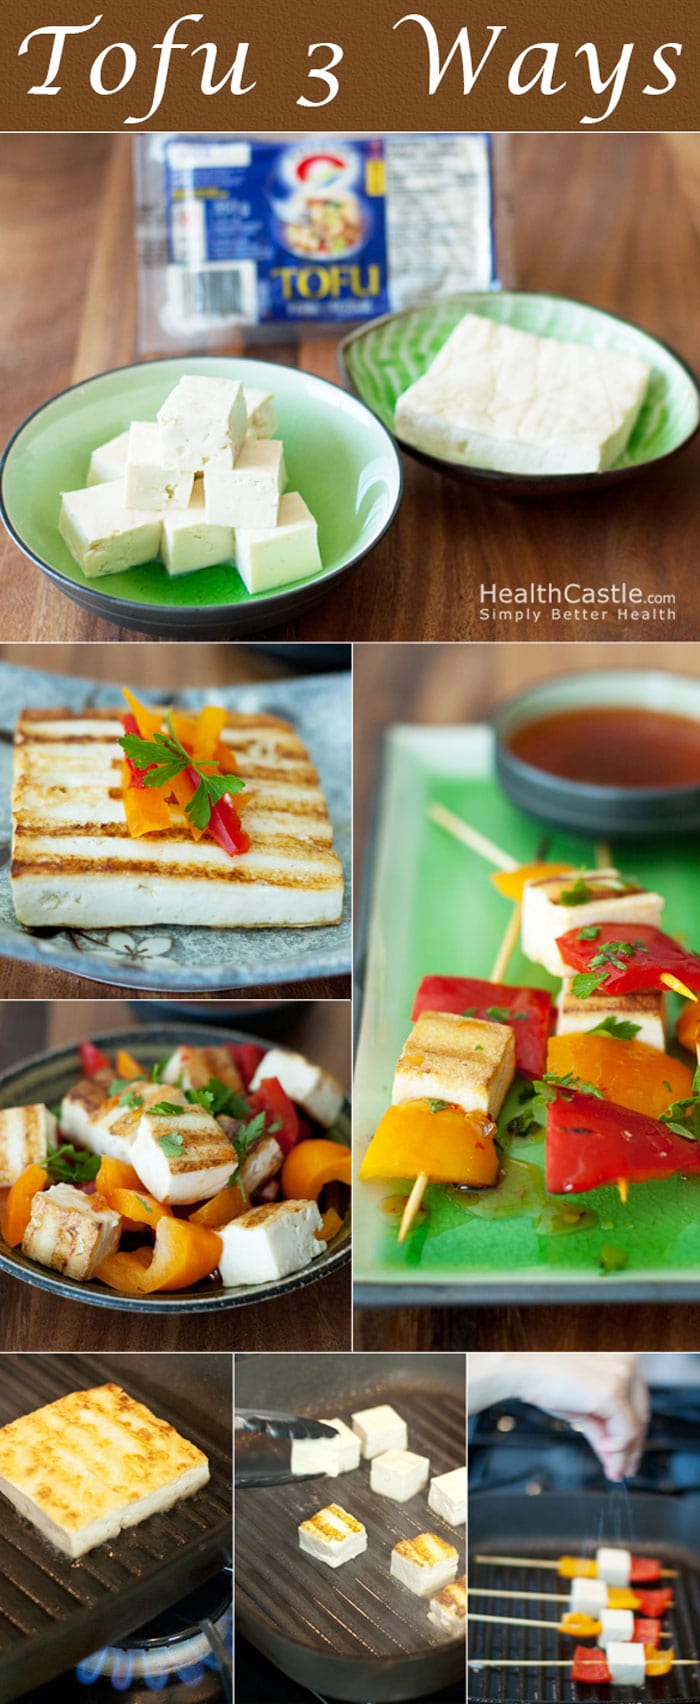 How to Cook Tofu 3 Ways